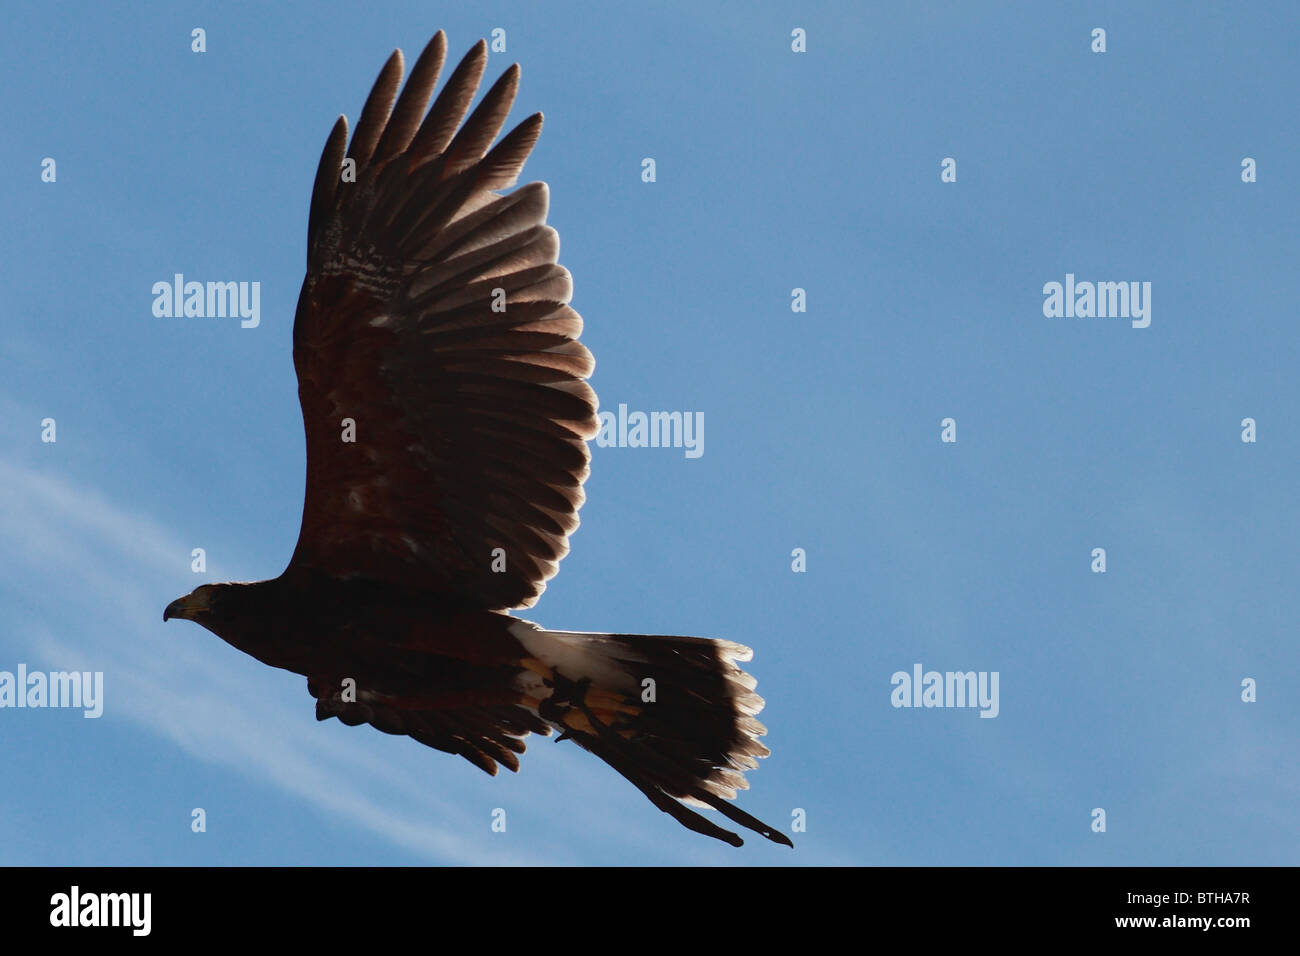 hawk in flight - Stock Image